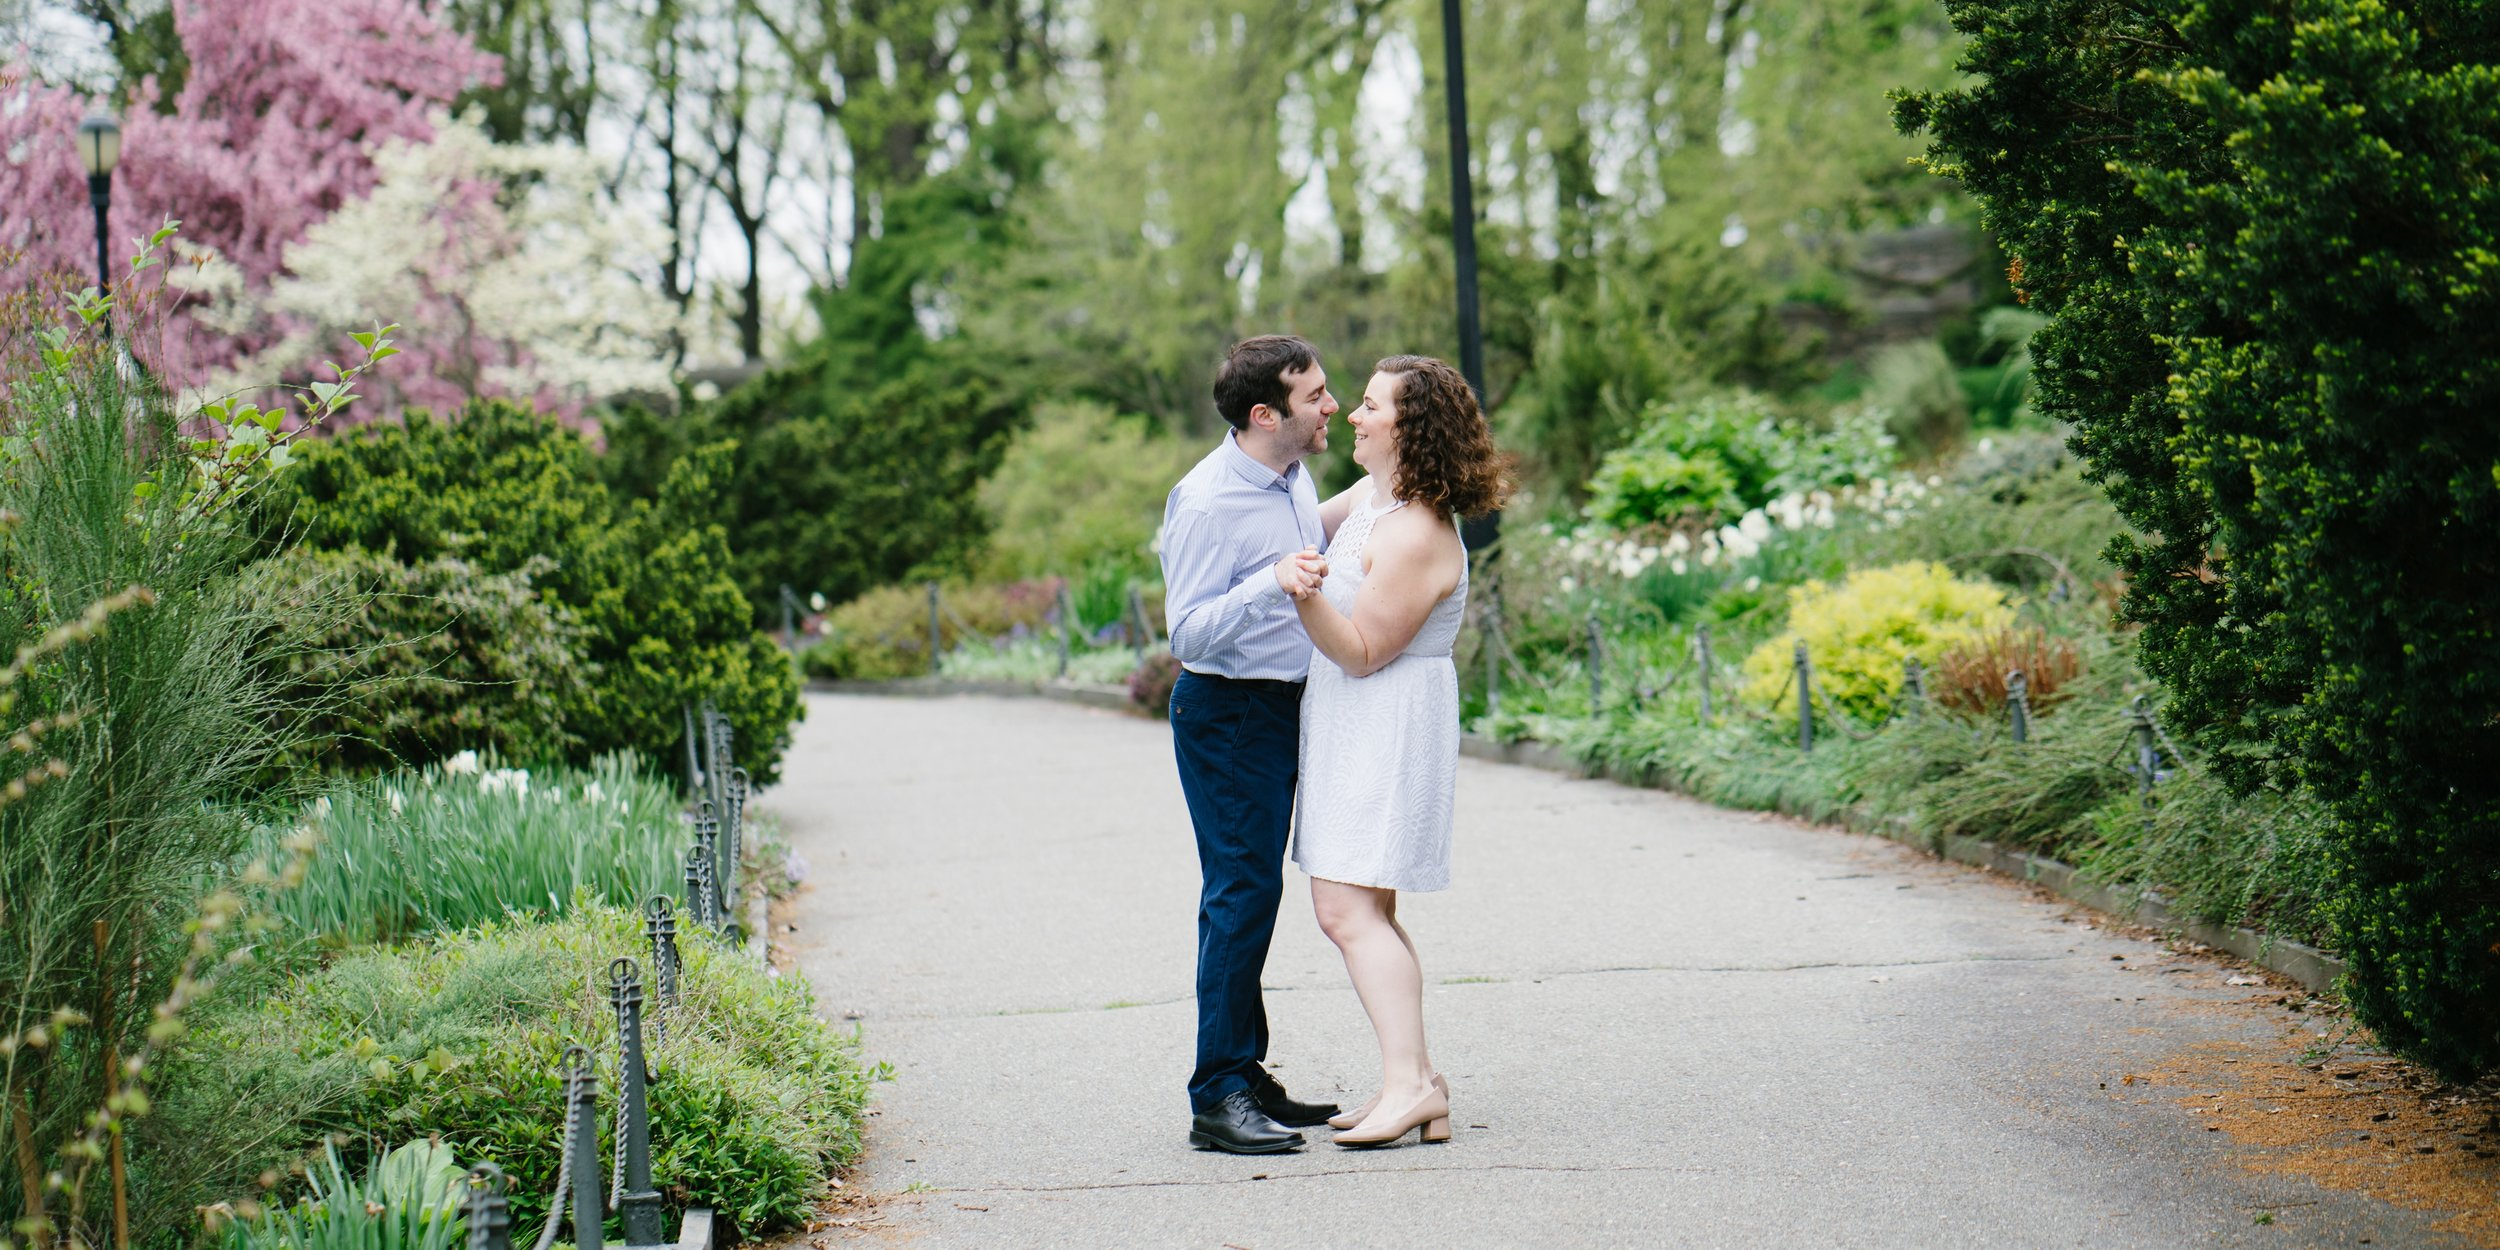 Wedding engagement session photos in New York city fort Tryon park